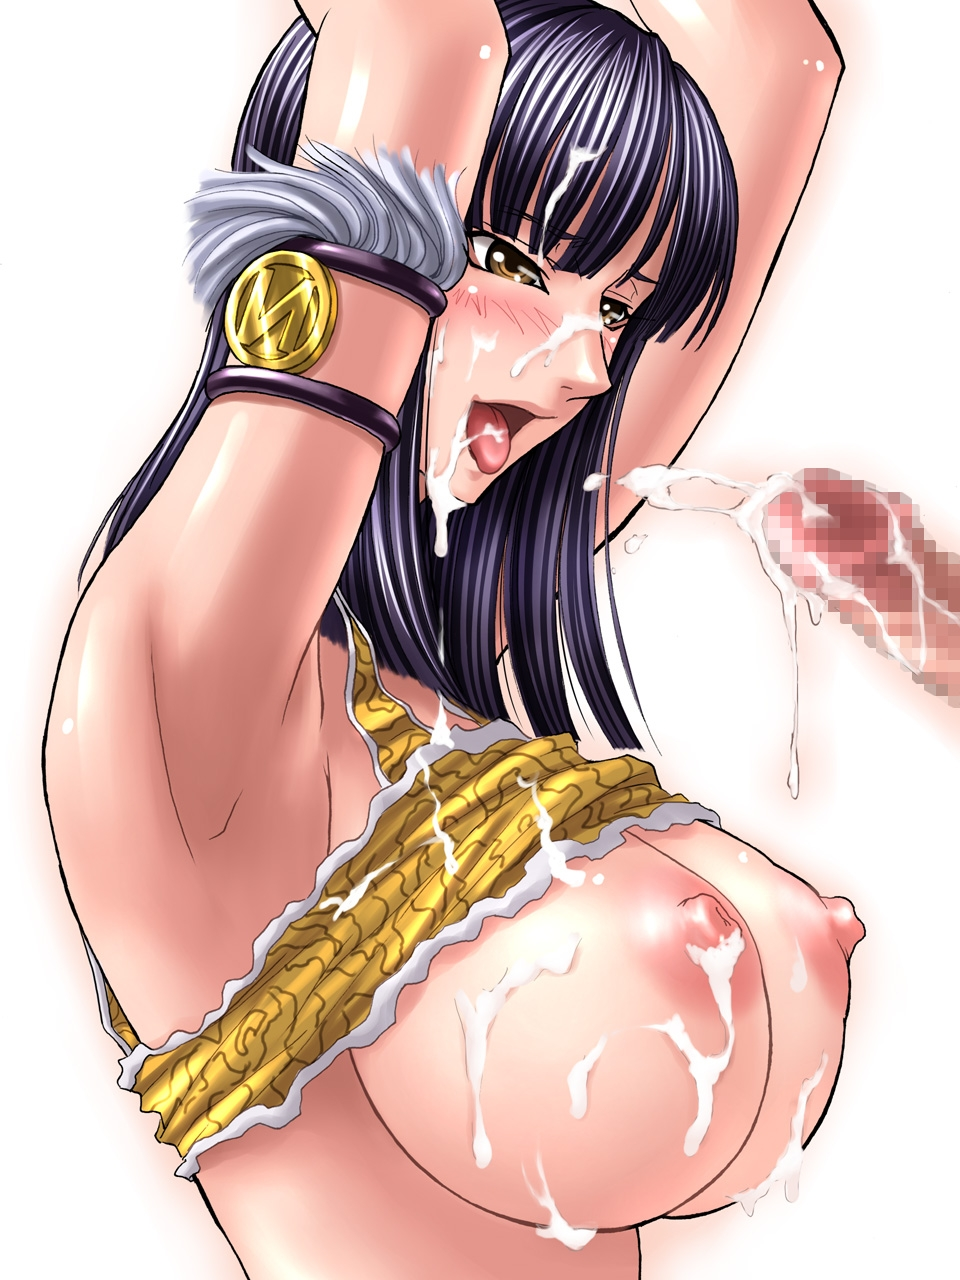 Toon sex pic ##00013030007 armlet arms up black hair blush breasts bukkake censored cum cum in mouth cum on body cum on breasts cum on clothes cum on hair cum on tongue cum on upper body cumdrip ejaculation facial highres huge breasts kagami large breasts long hair nico robin nipples one piece open mouth penis purple hair shirt lift short hair simple background solo tongue yellow eyess